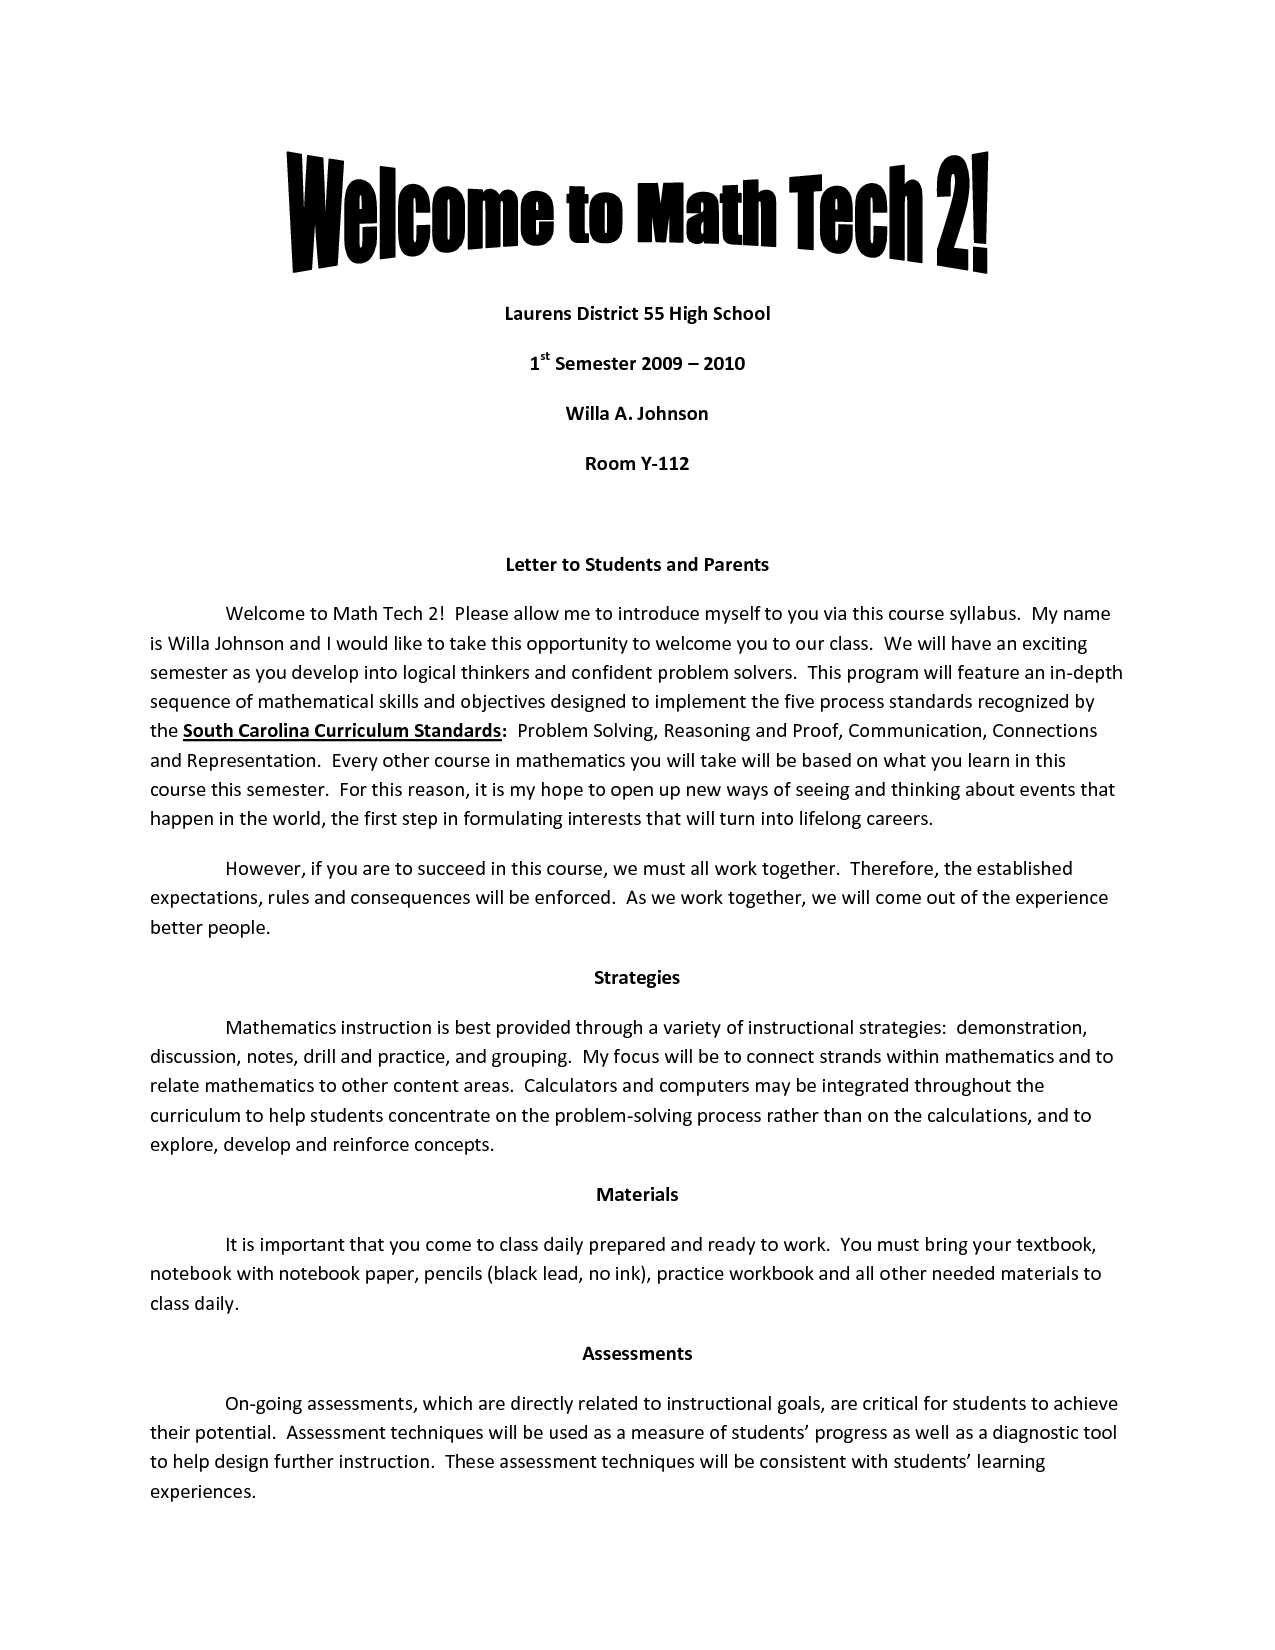 teacher introduction letter for high school